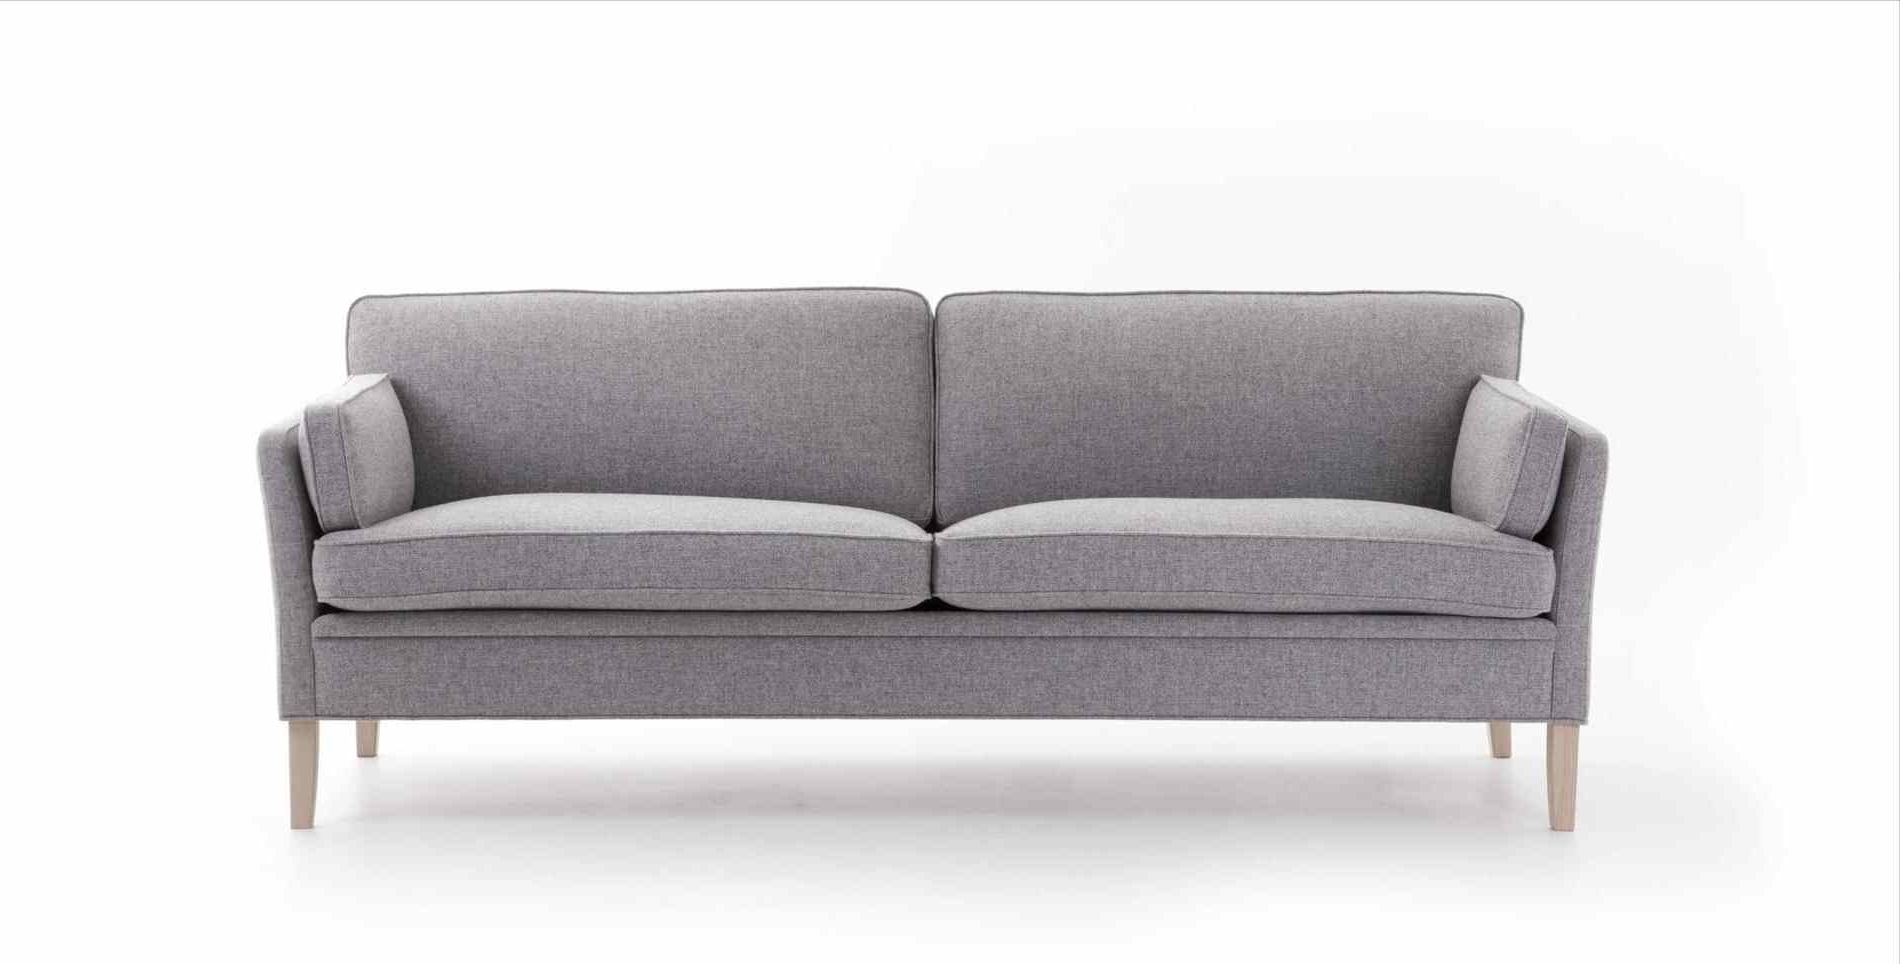 Well Known Sofa : Fabric Seater Cover Sectional Sectional Sofas With Throughout Removable Covers Sectional Sofas (View 20 of 20)